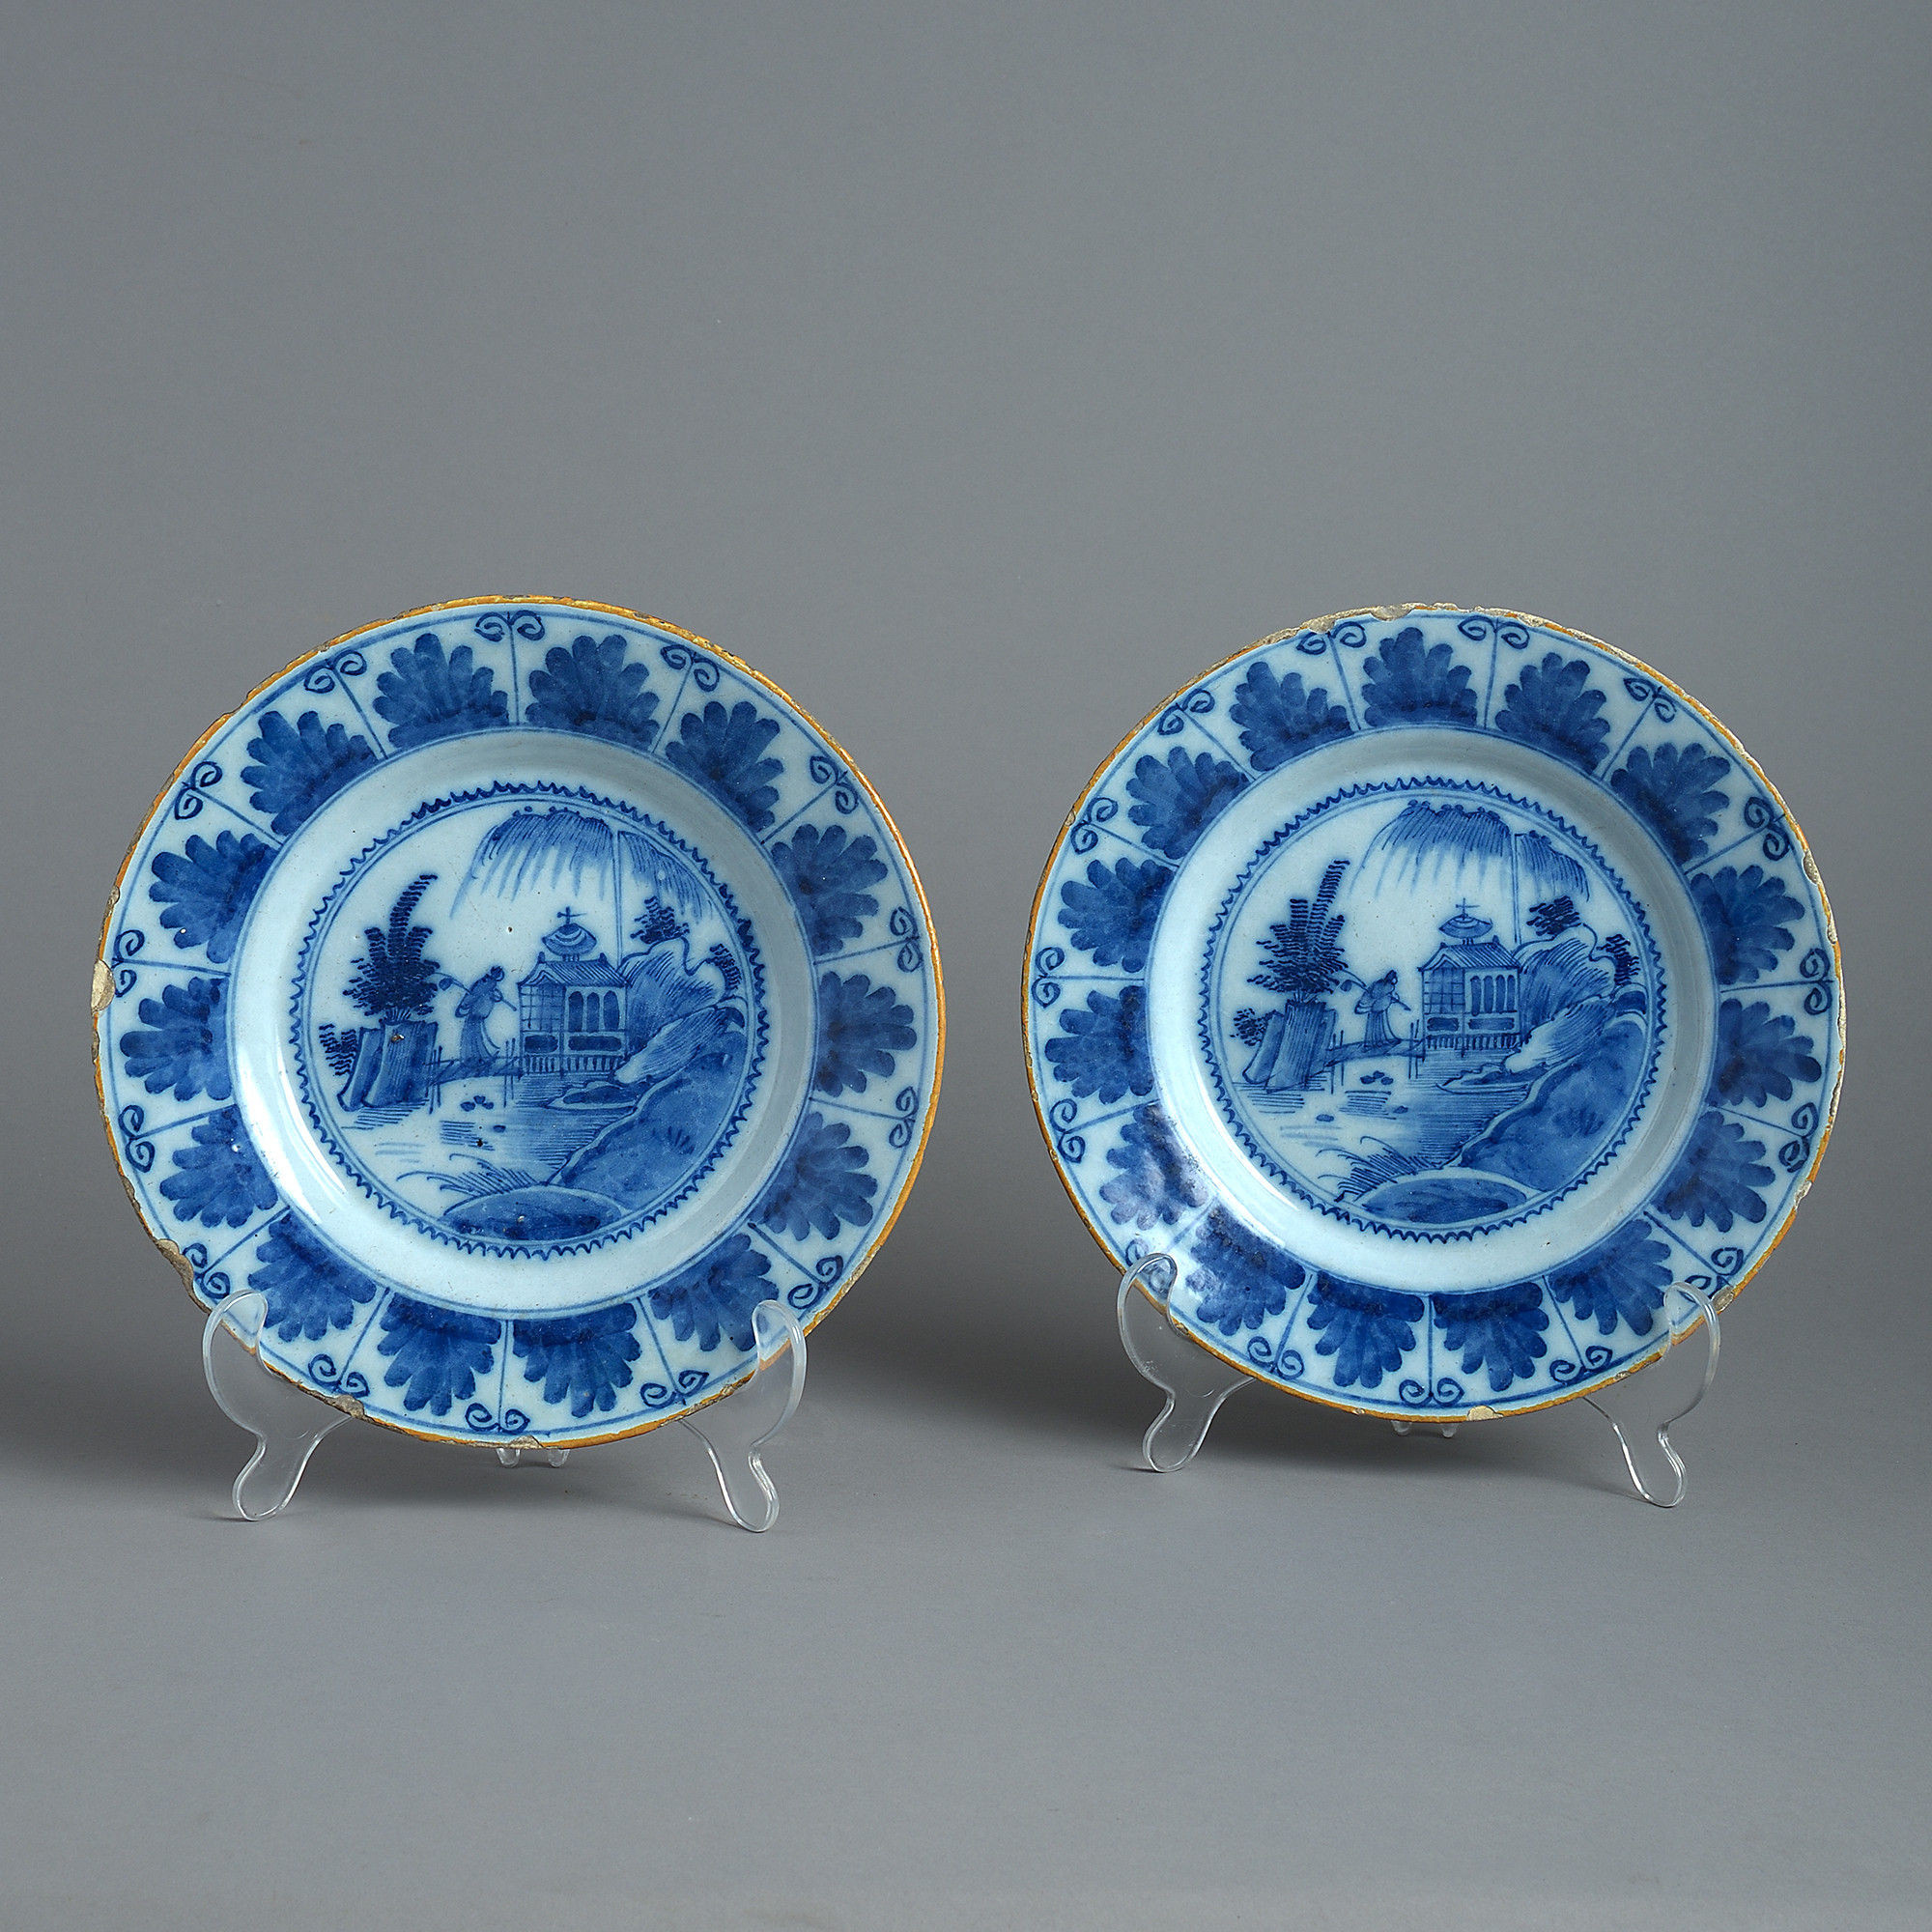 delft tulip vase of delft dinnerware castrophotos within a pair of 18th century delft plates in the chinese taste